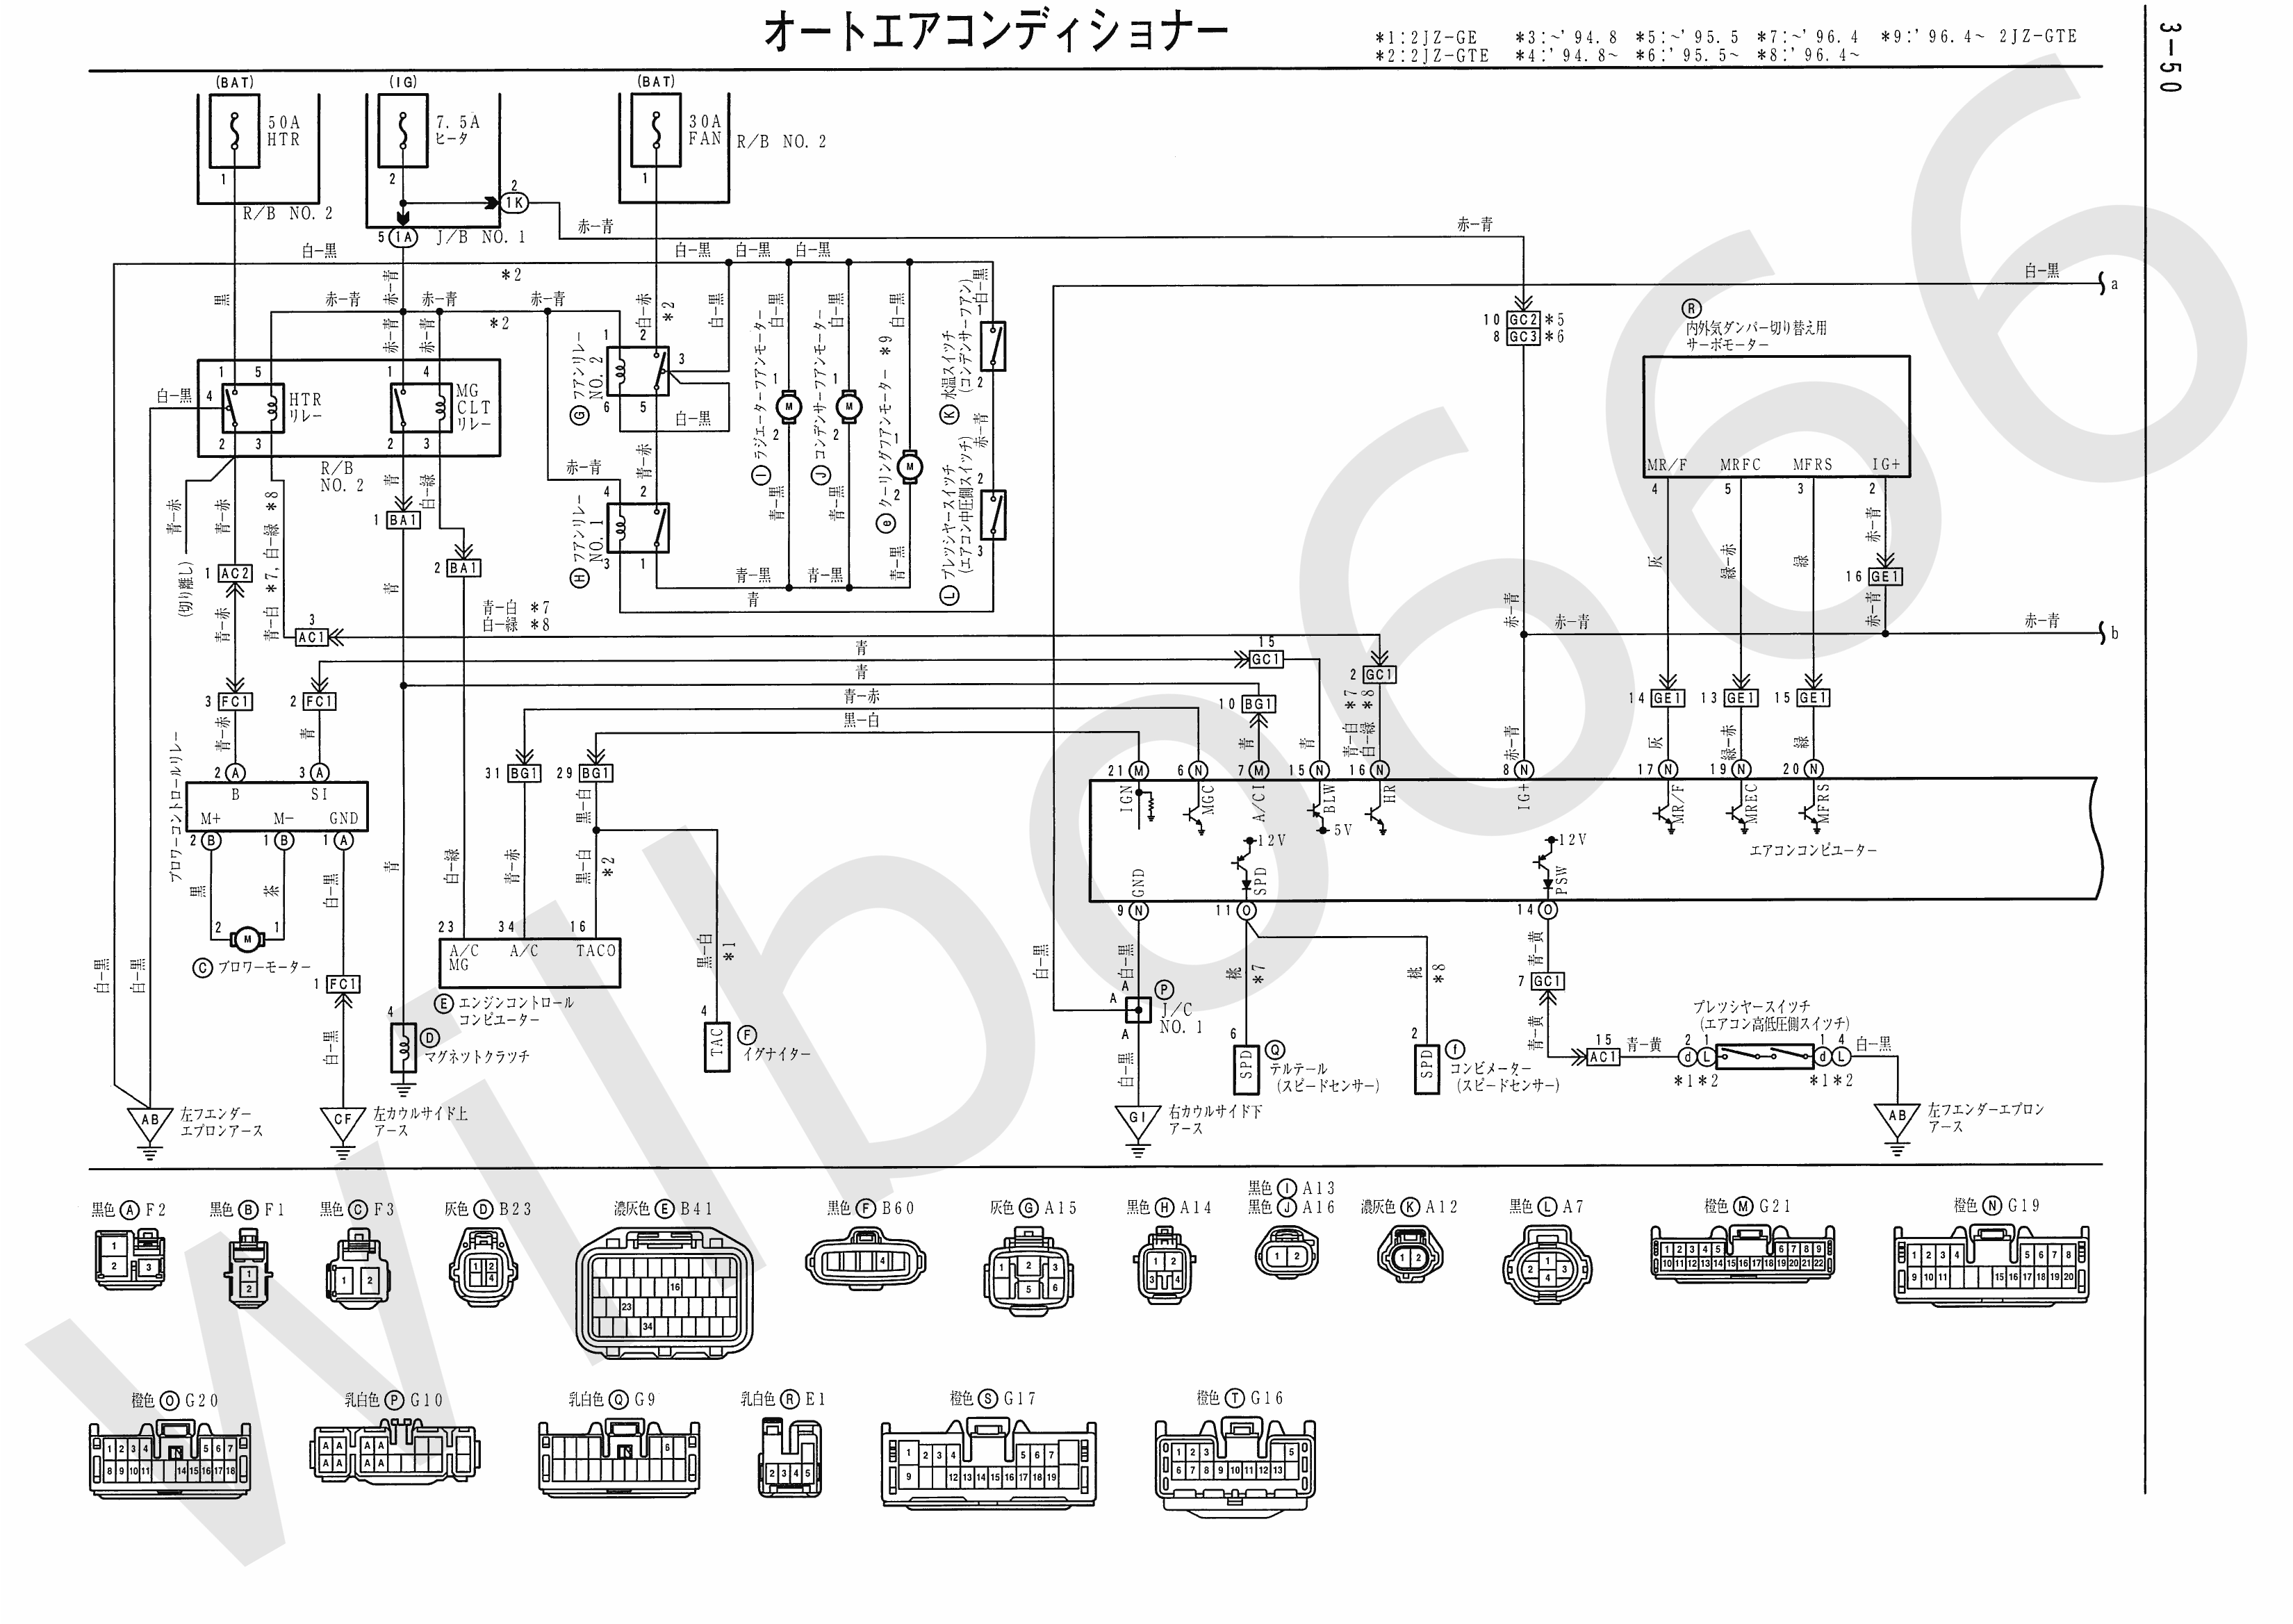 1jz alternator wiring diagram auto electrical wiring diagram rh harvard edu  co uk sistemagroup me